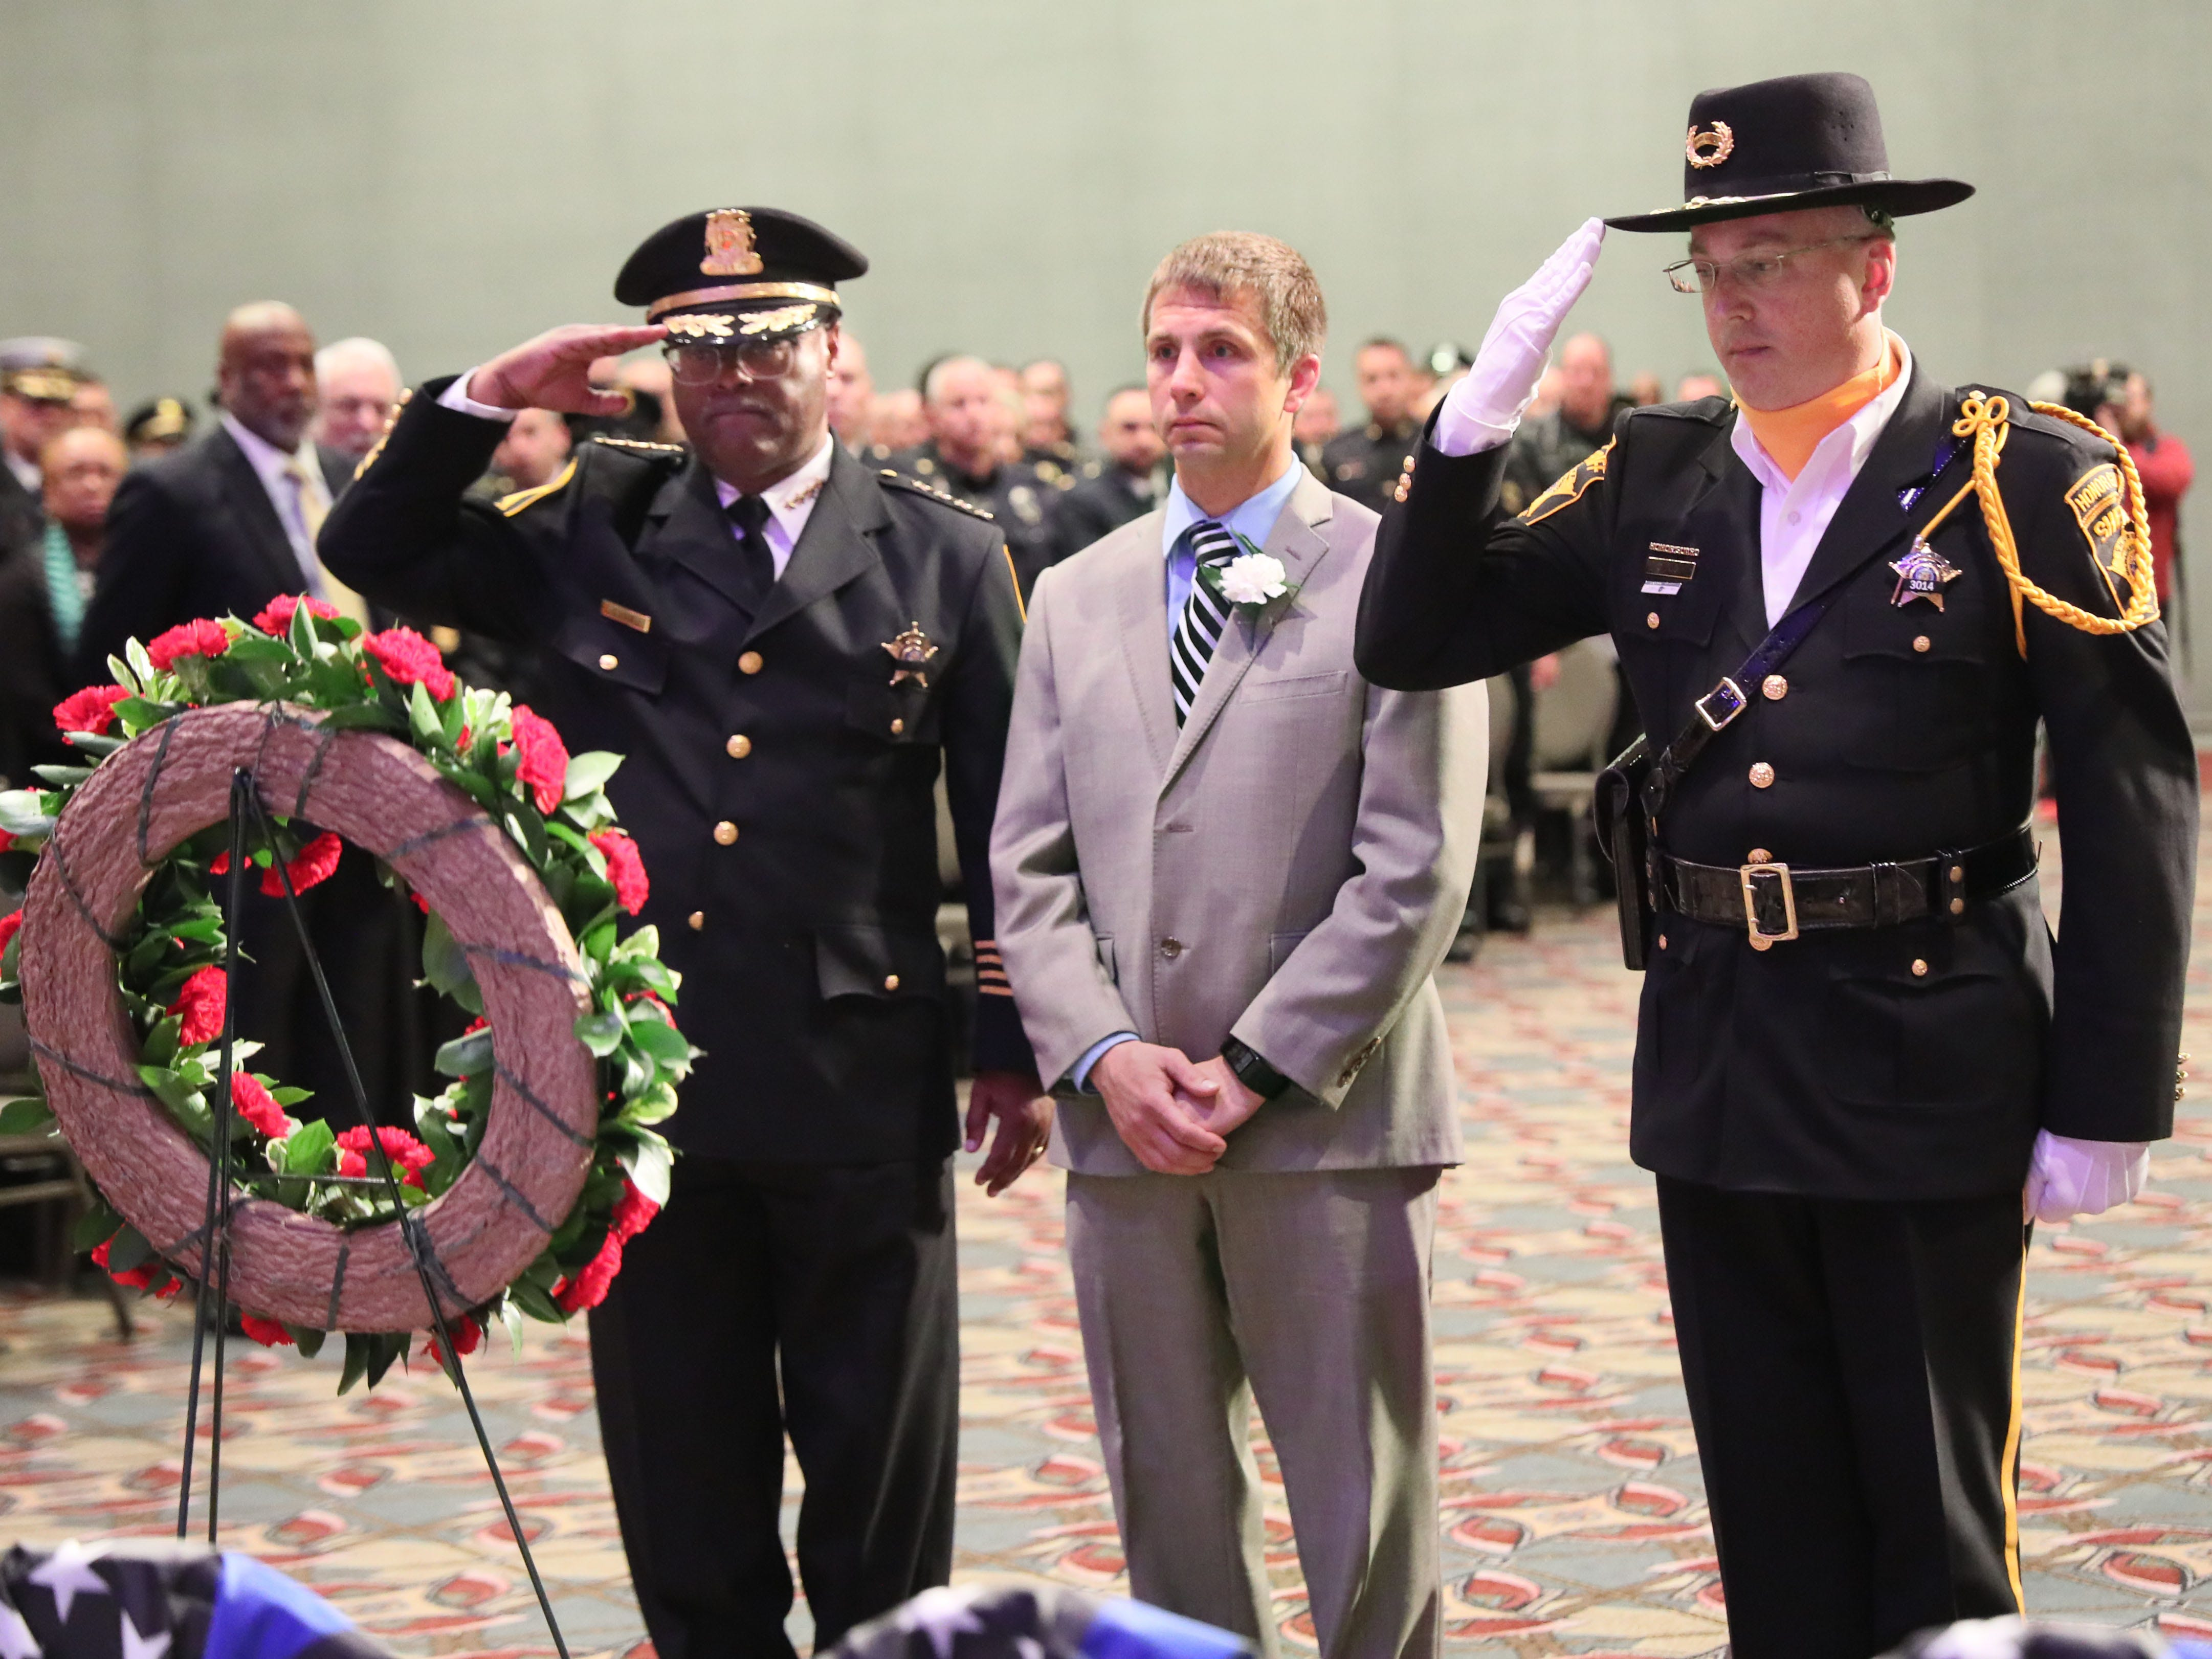 Christopher Demos, center,  accompanied by Sheriff Earnell R. Lucas, left, and Deputy Michael Koch, right, presents a wreath in honor of David Demos of the Milwaukee County Sheriff's Office.